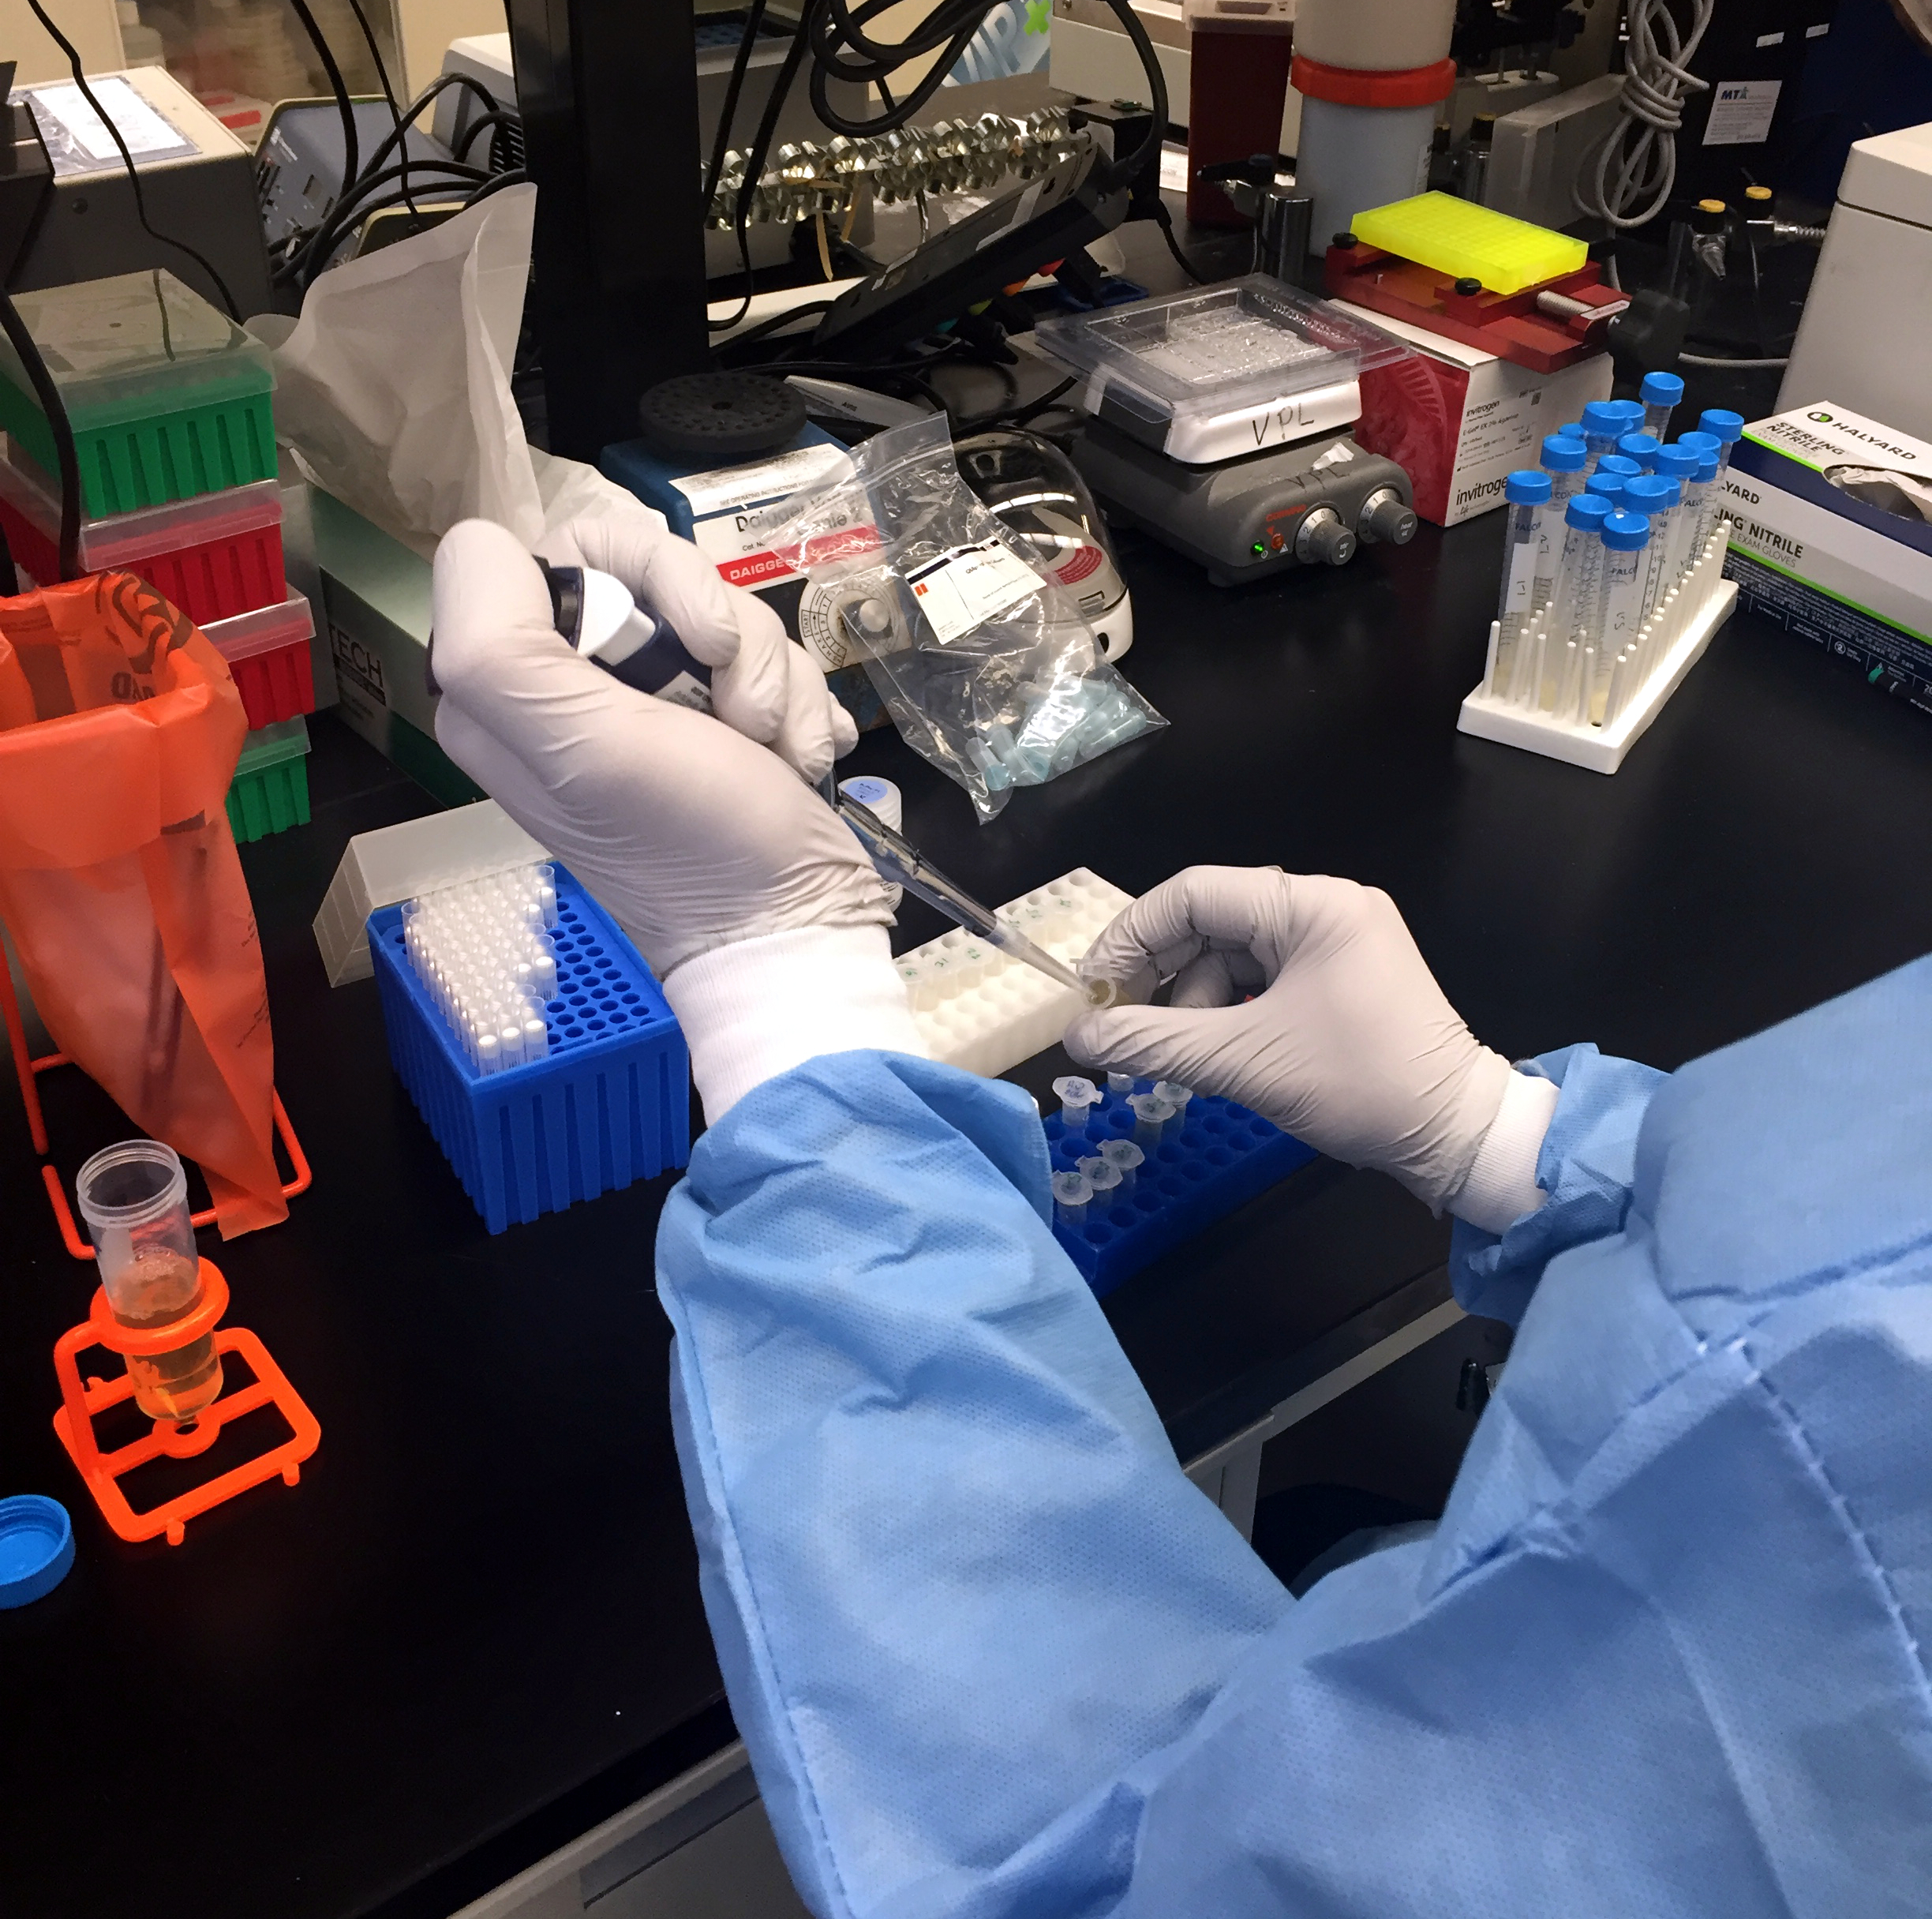 A Zika virus researcher at the NIAID Vaccine Research Center pipets samples. Credit: NIAID.